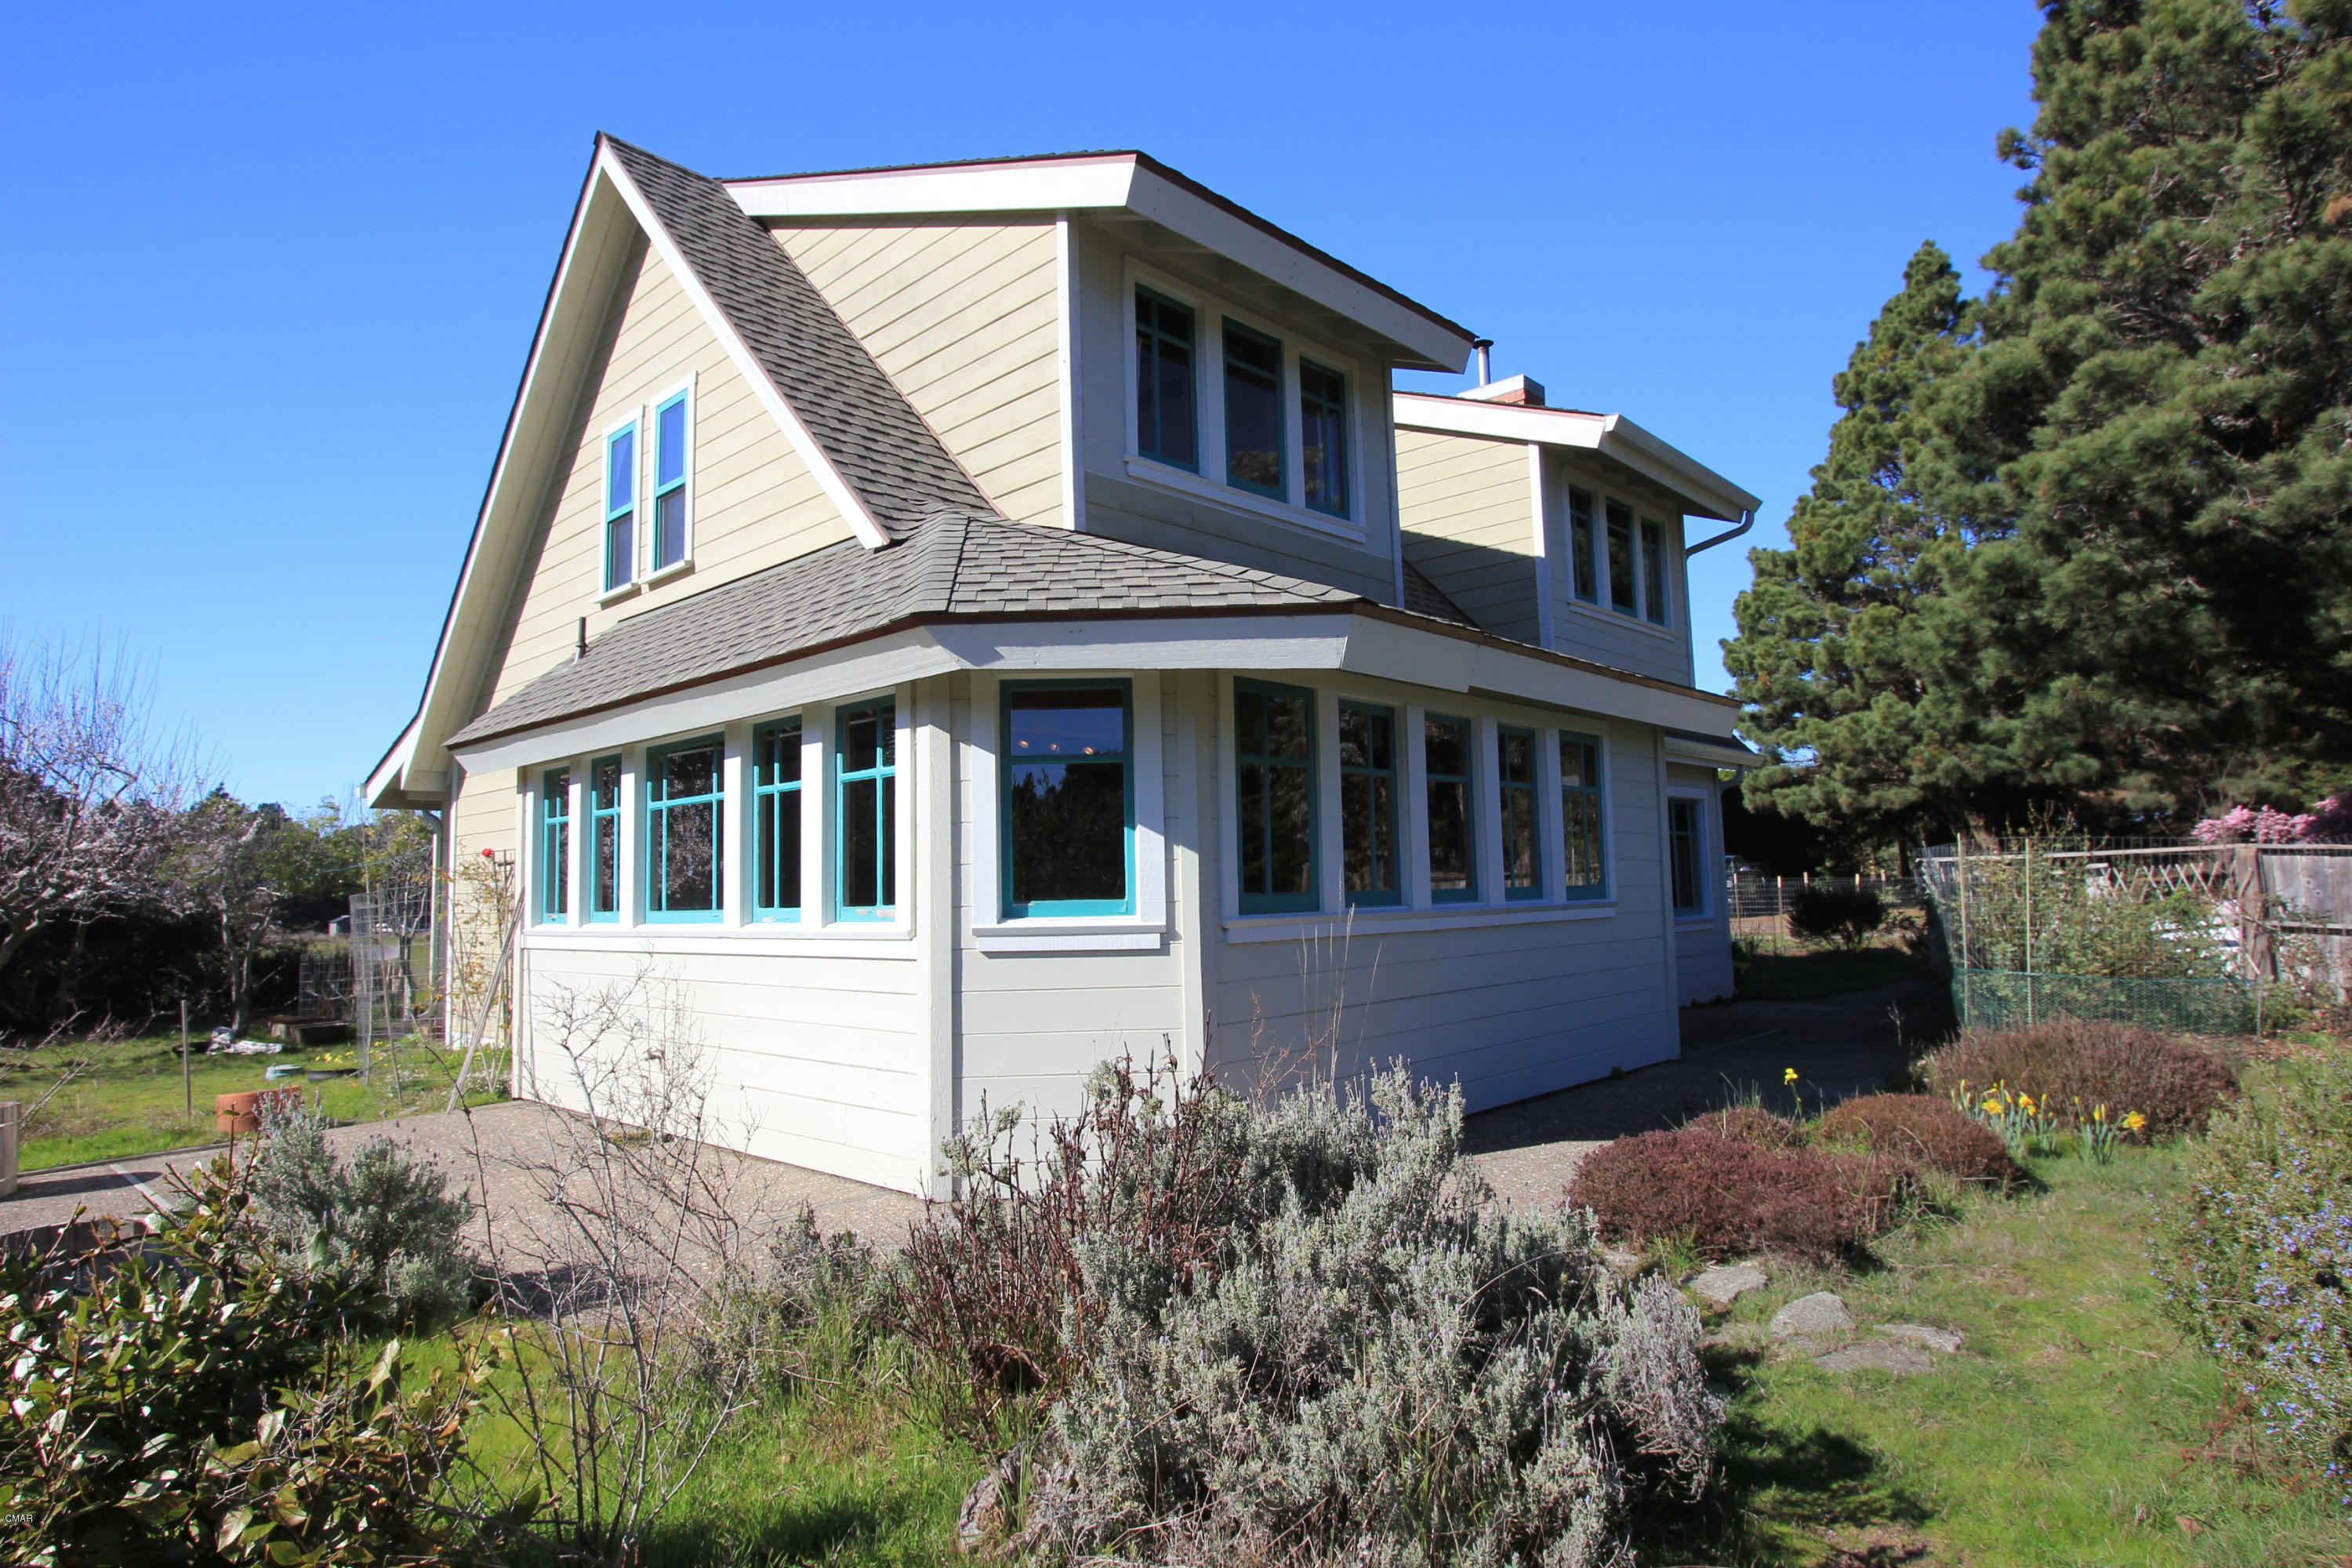 Wonderful location on enough acreage for animals and gardening close to the ocean and Belinda Point Trail. This classic farmhouse has plenty of room for family upstairs and down. Peekaboo Bluewater ocean views can be had upstairs. This home has provided its family decades of happy memories and is ready for its new owners. New roof done in 2018